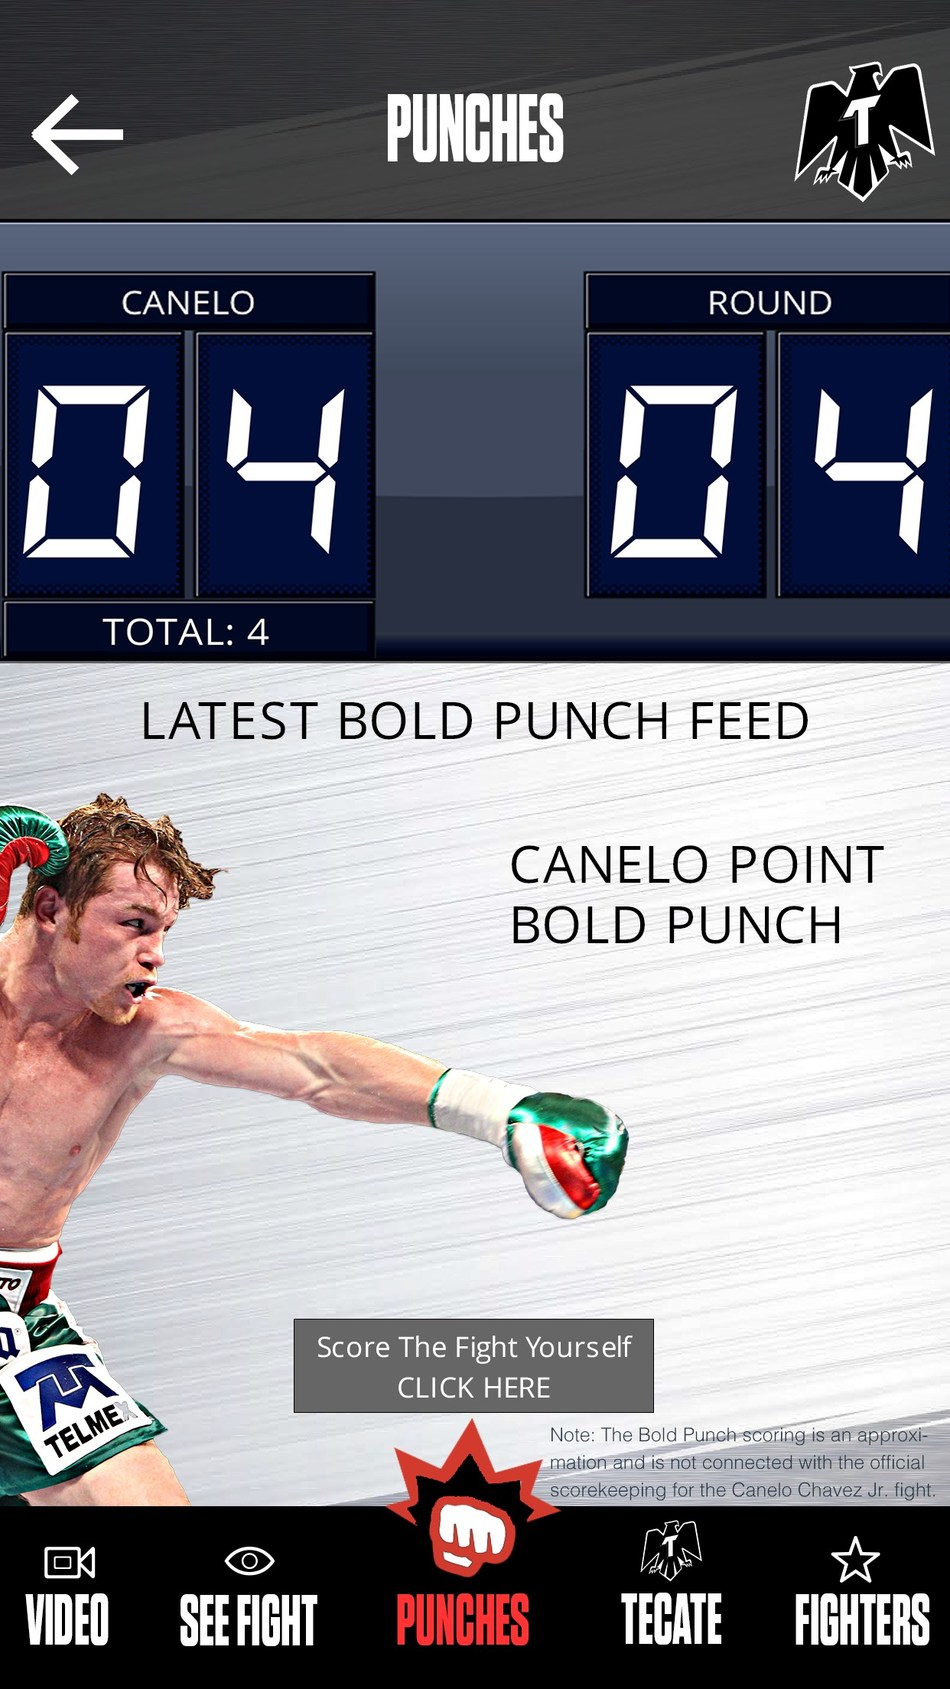 Feel your phone vibrate every time Canelo lands a power punch!